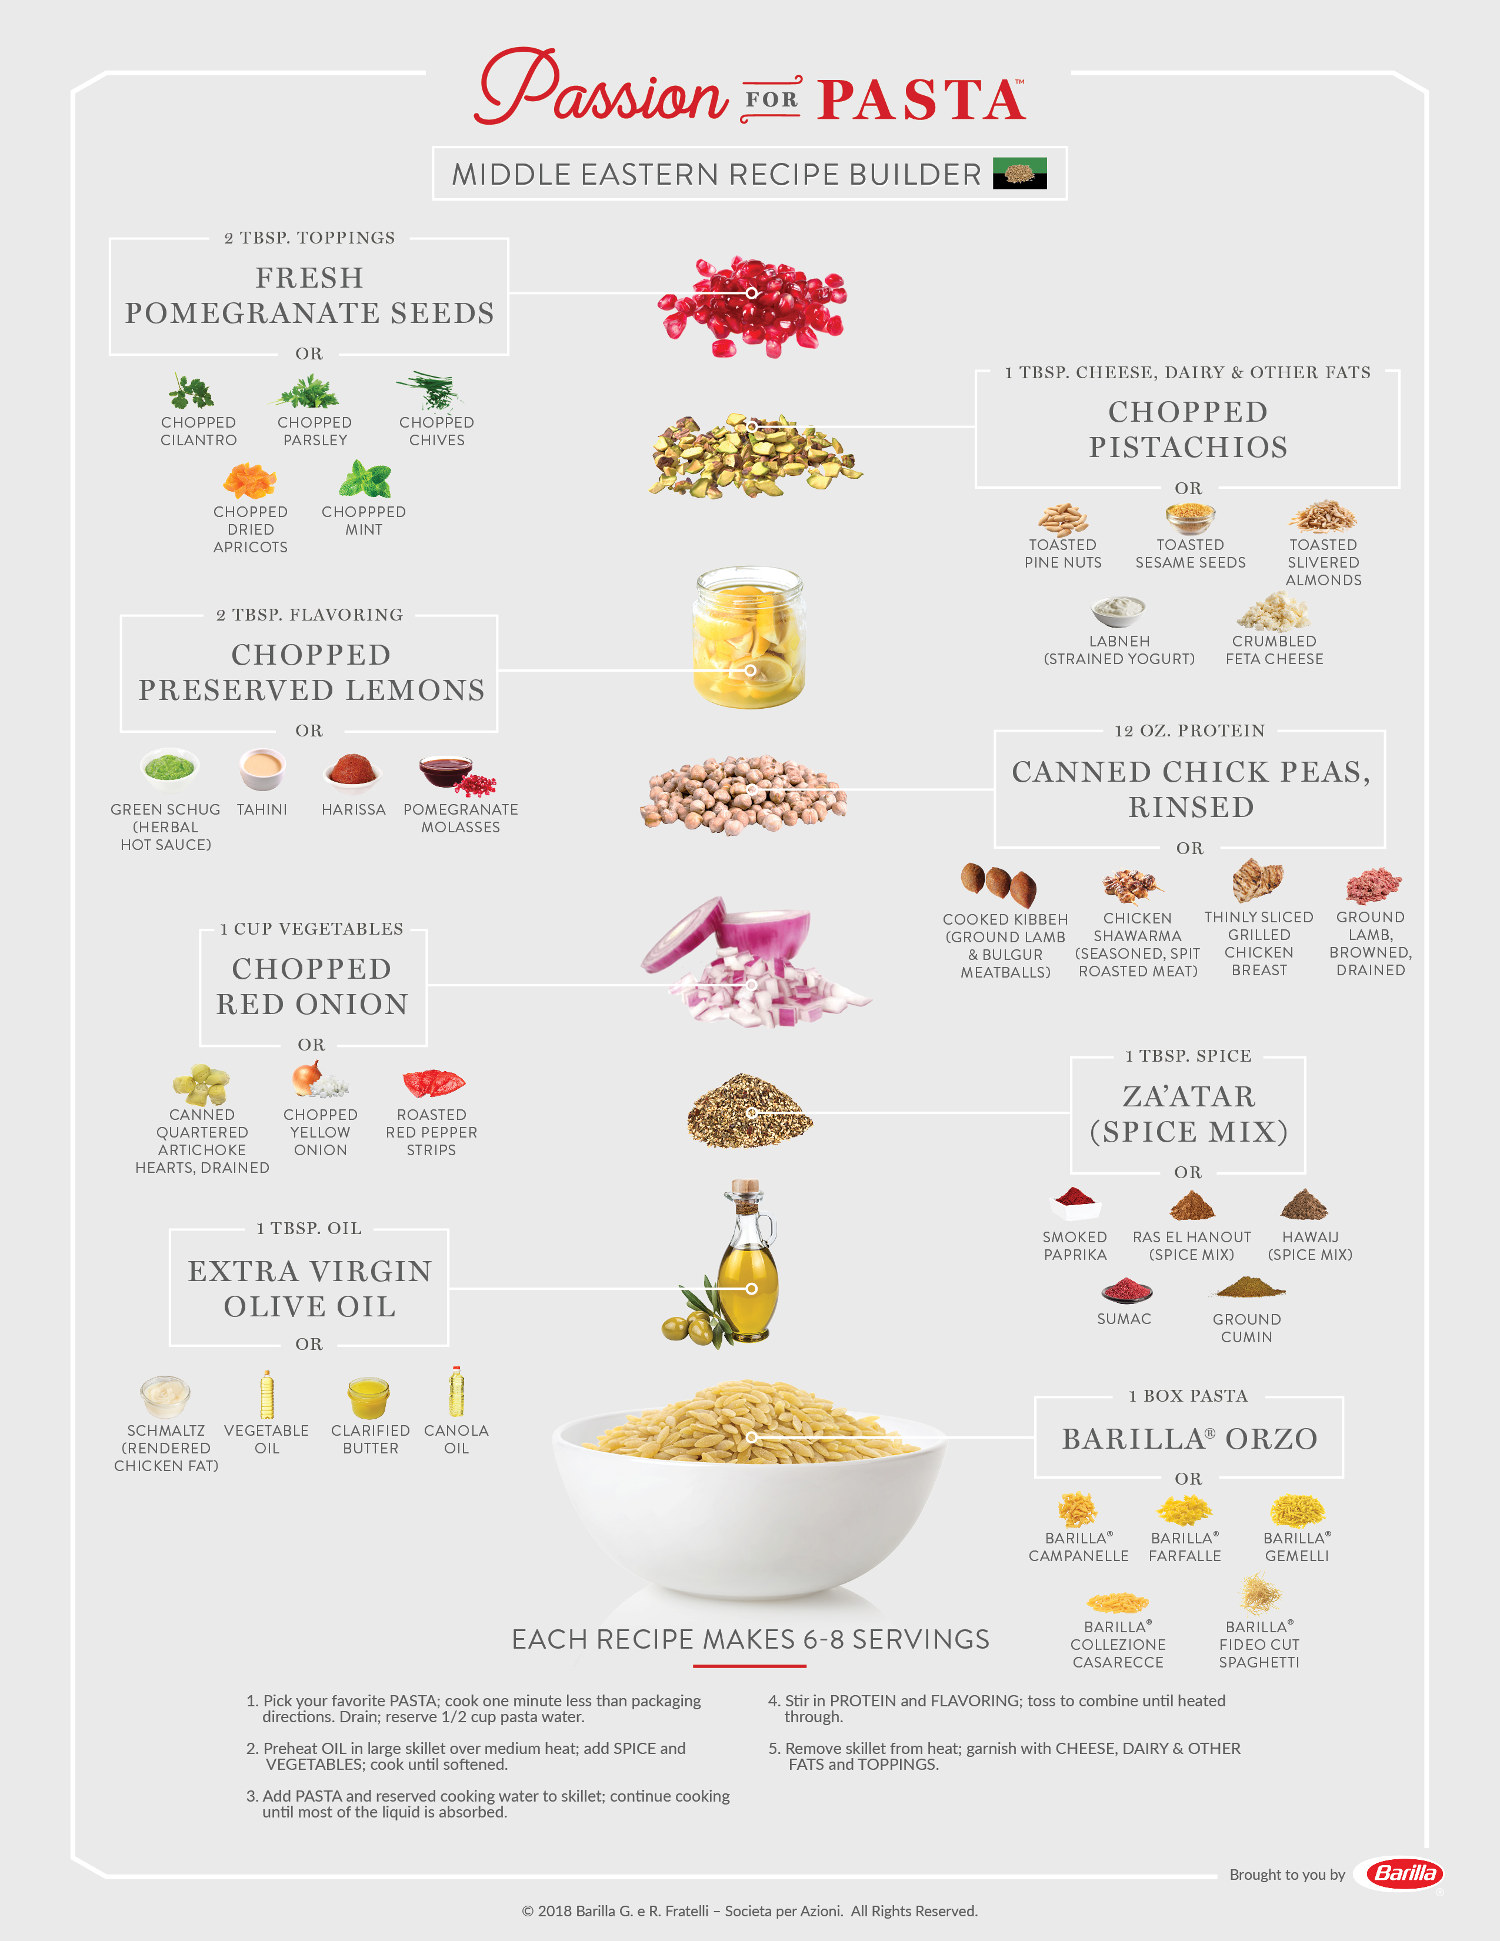 Recipe Builder for Middle Eastern Cuisine